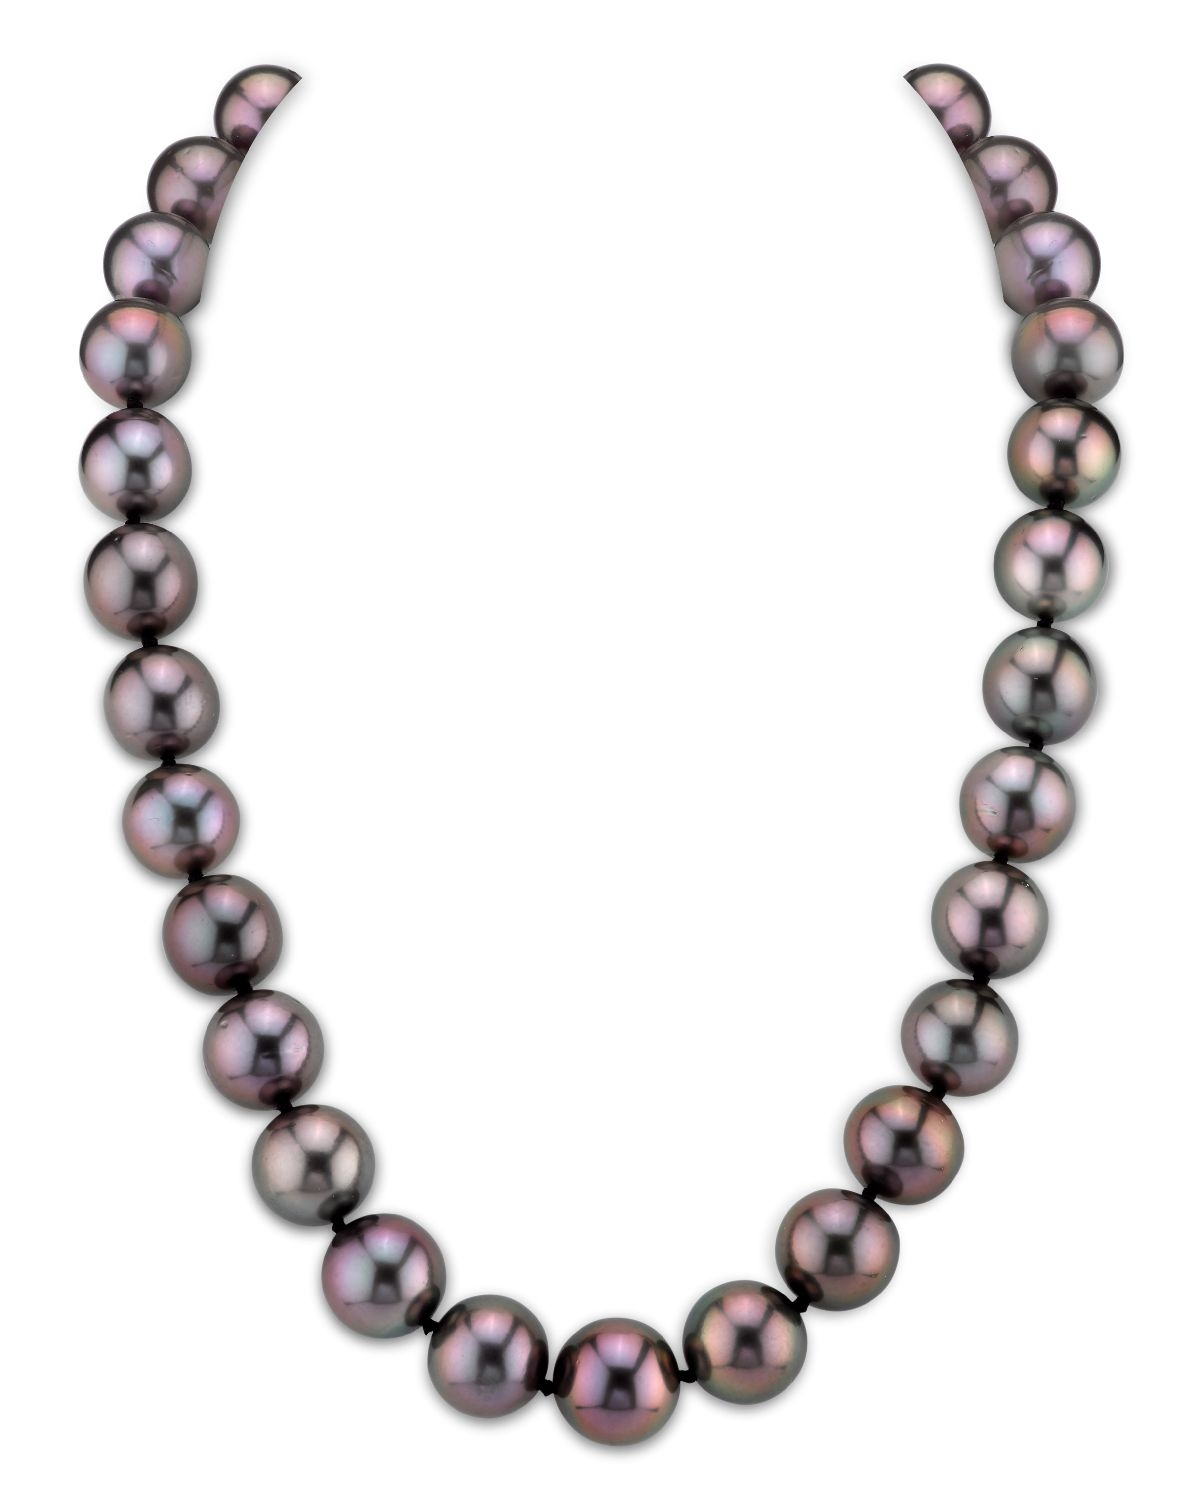 12-13mm RARE Peacock Tahitian South Sea Pearl Necklace